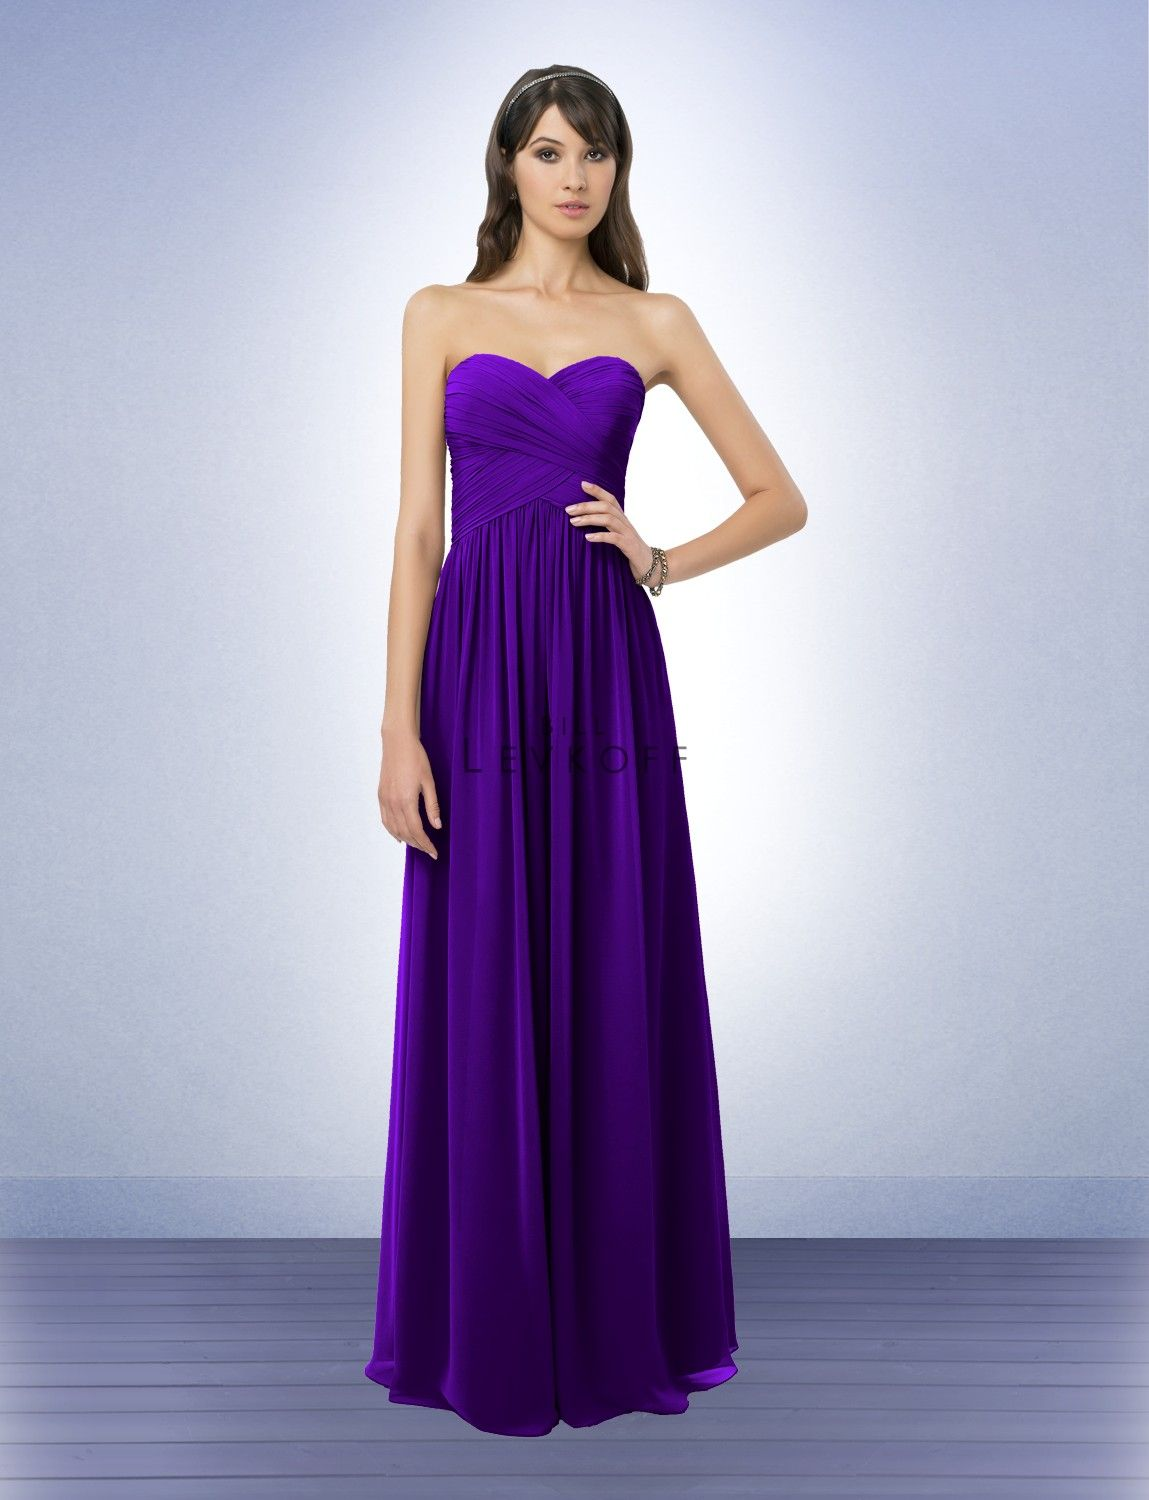 Bridesmaid dress again i love this idea of royal purple as a bridesmaid dress again i love this idea of royal purple as a wedding color ombrellifo Image collections